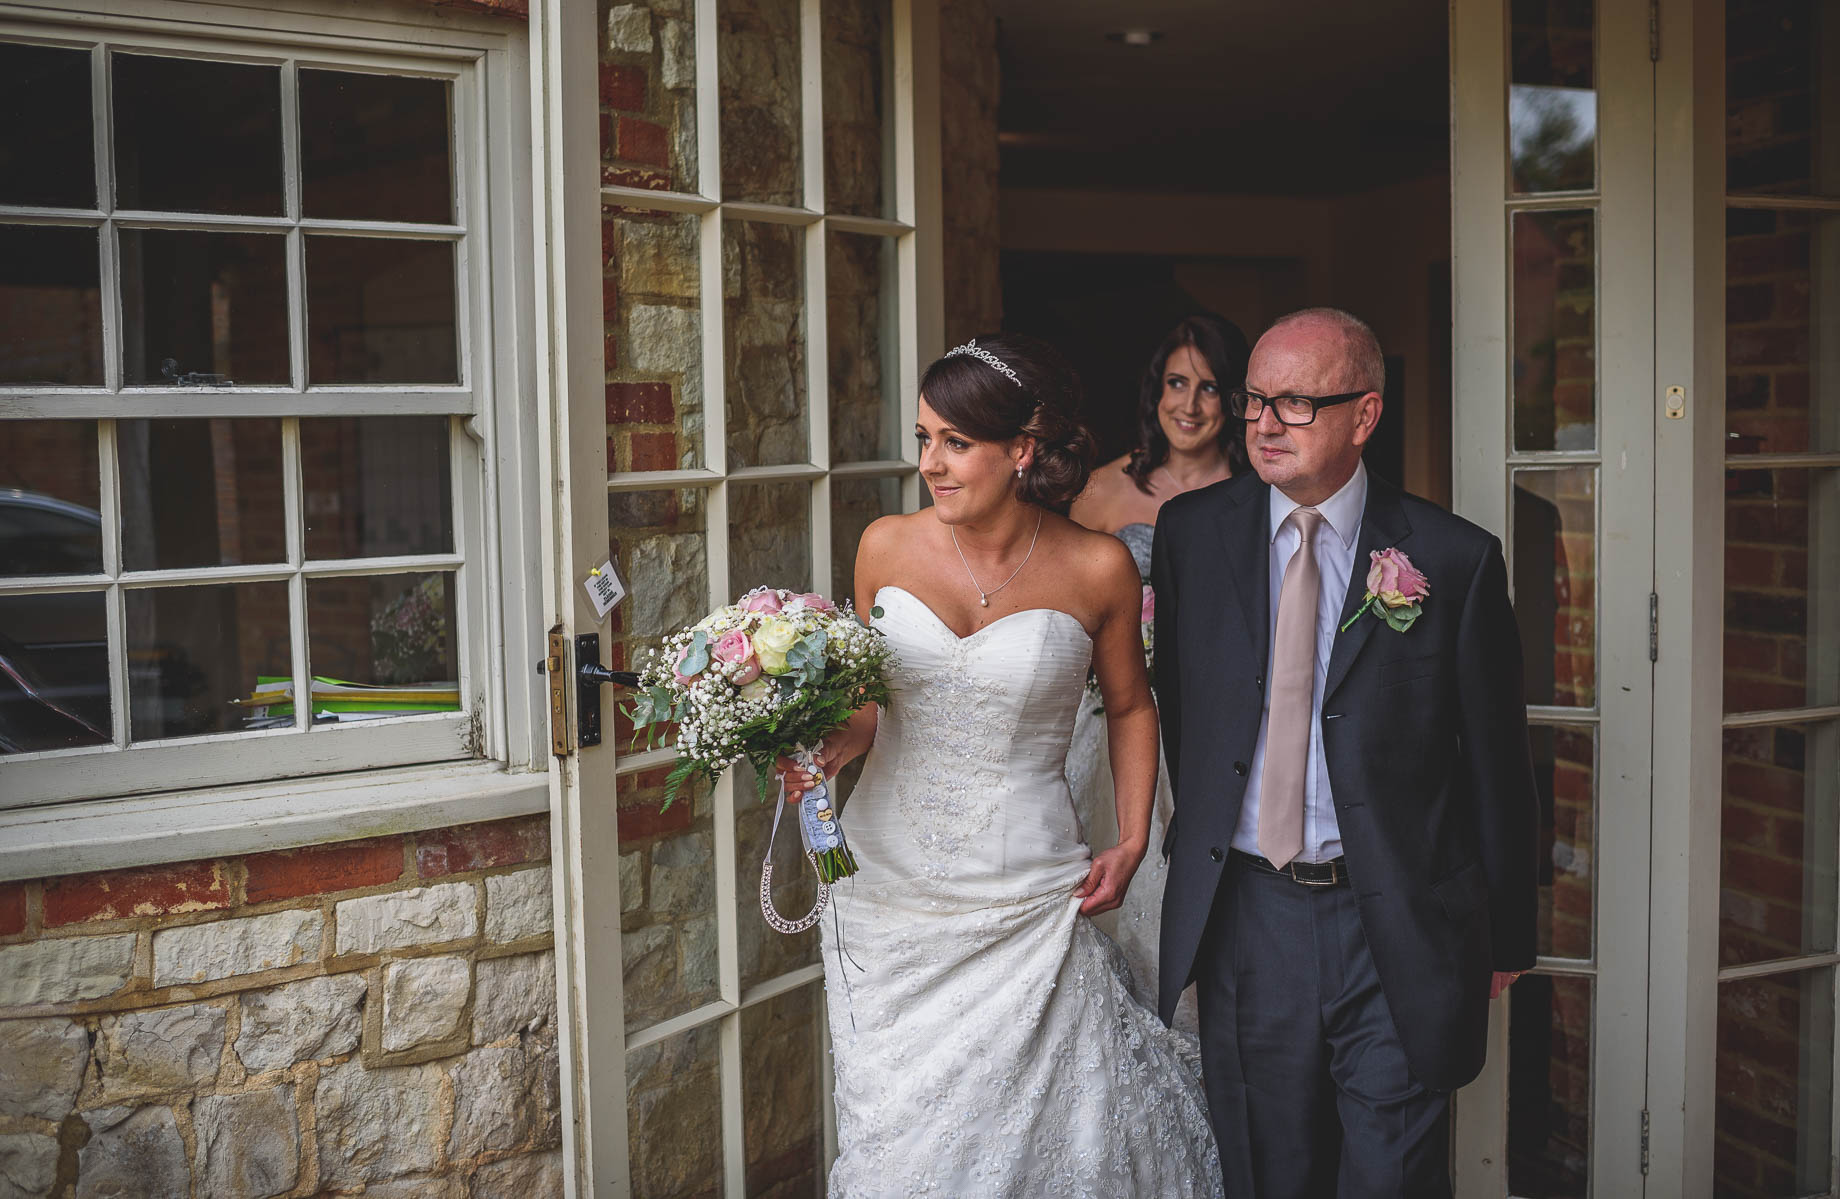 Bury Court Barn wedding photography - Guy Collier Photography - Karen and John (45 of 166)